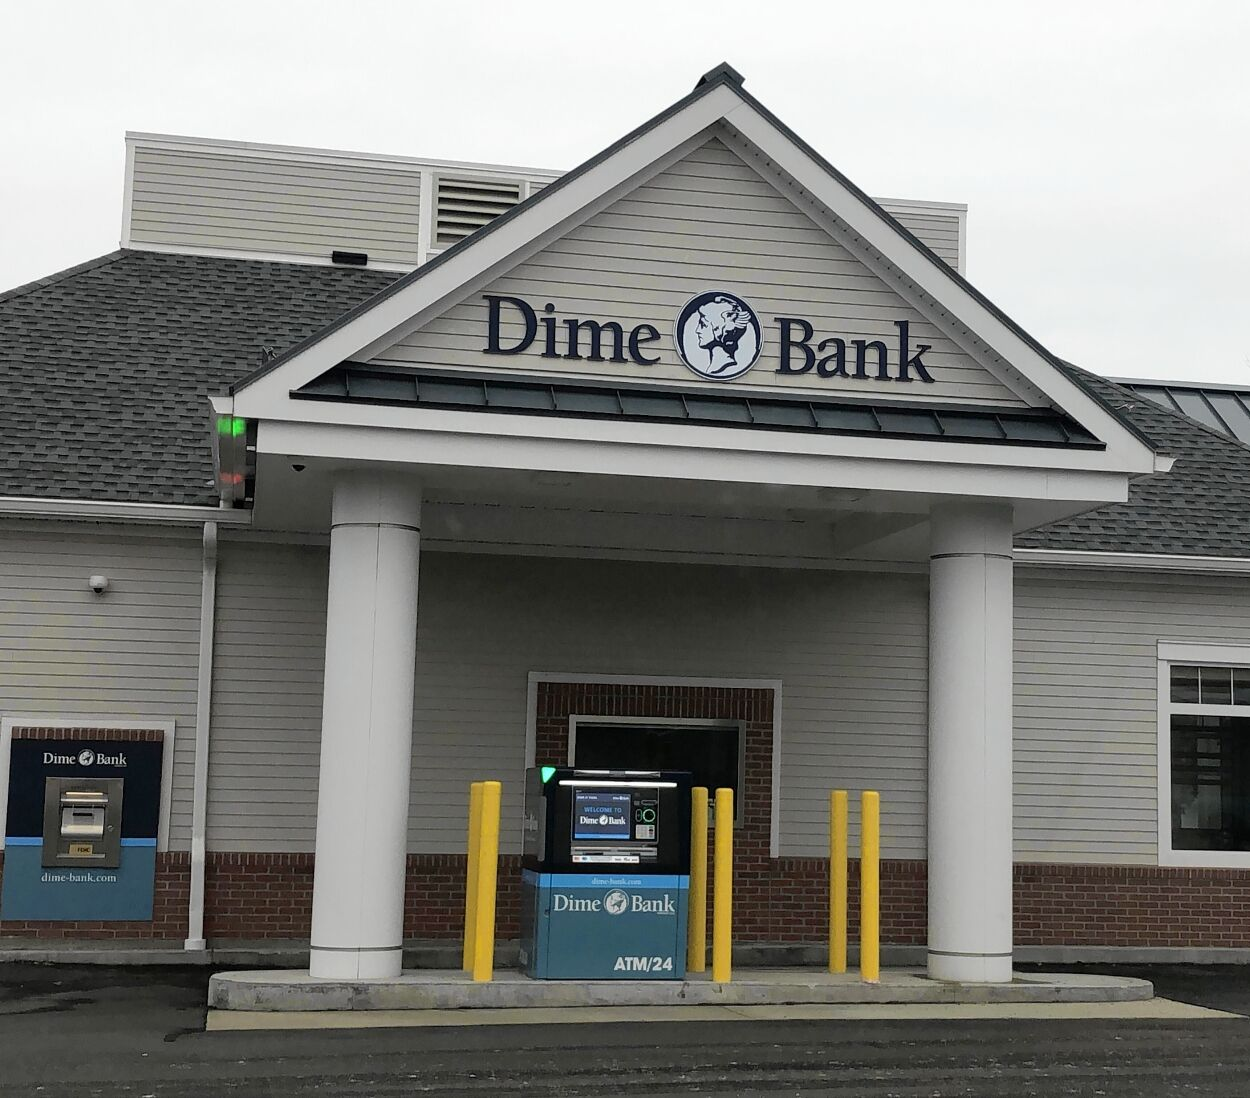 Dime Bank in Manchester